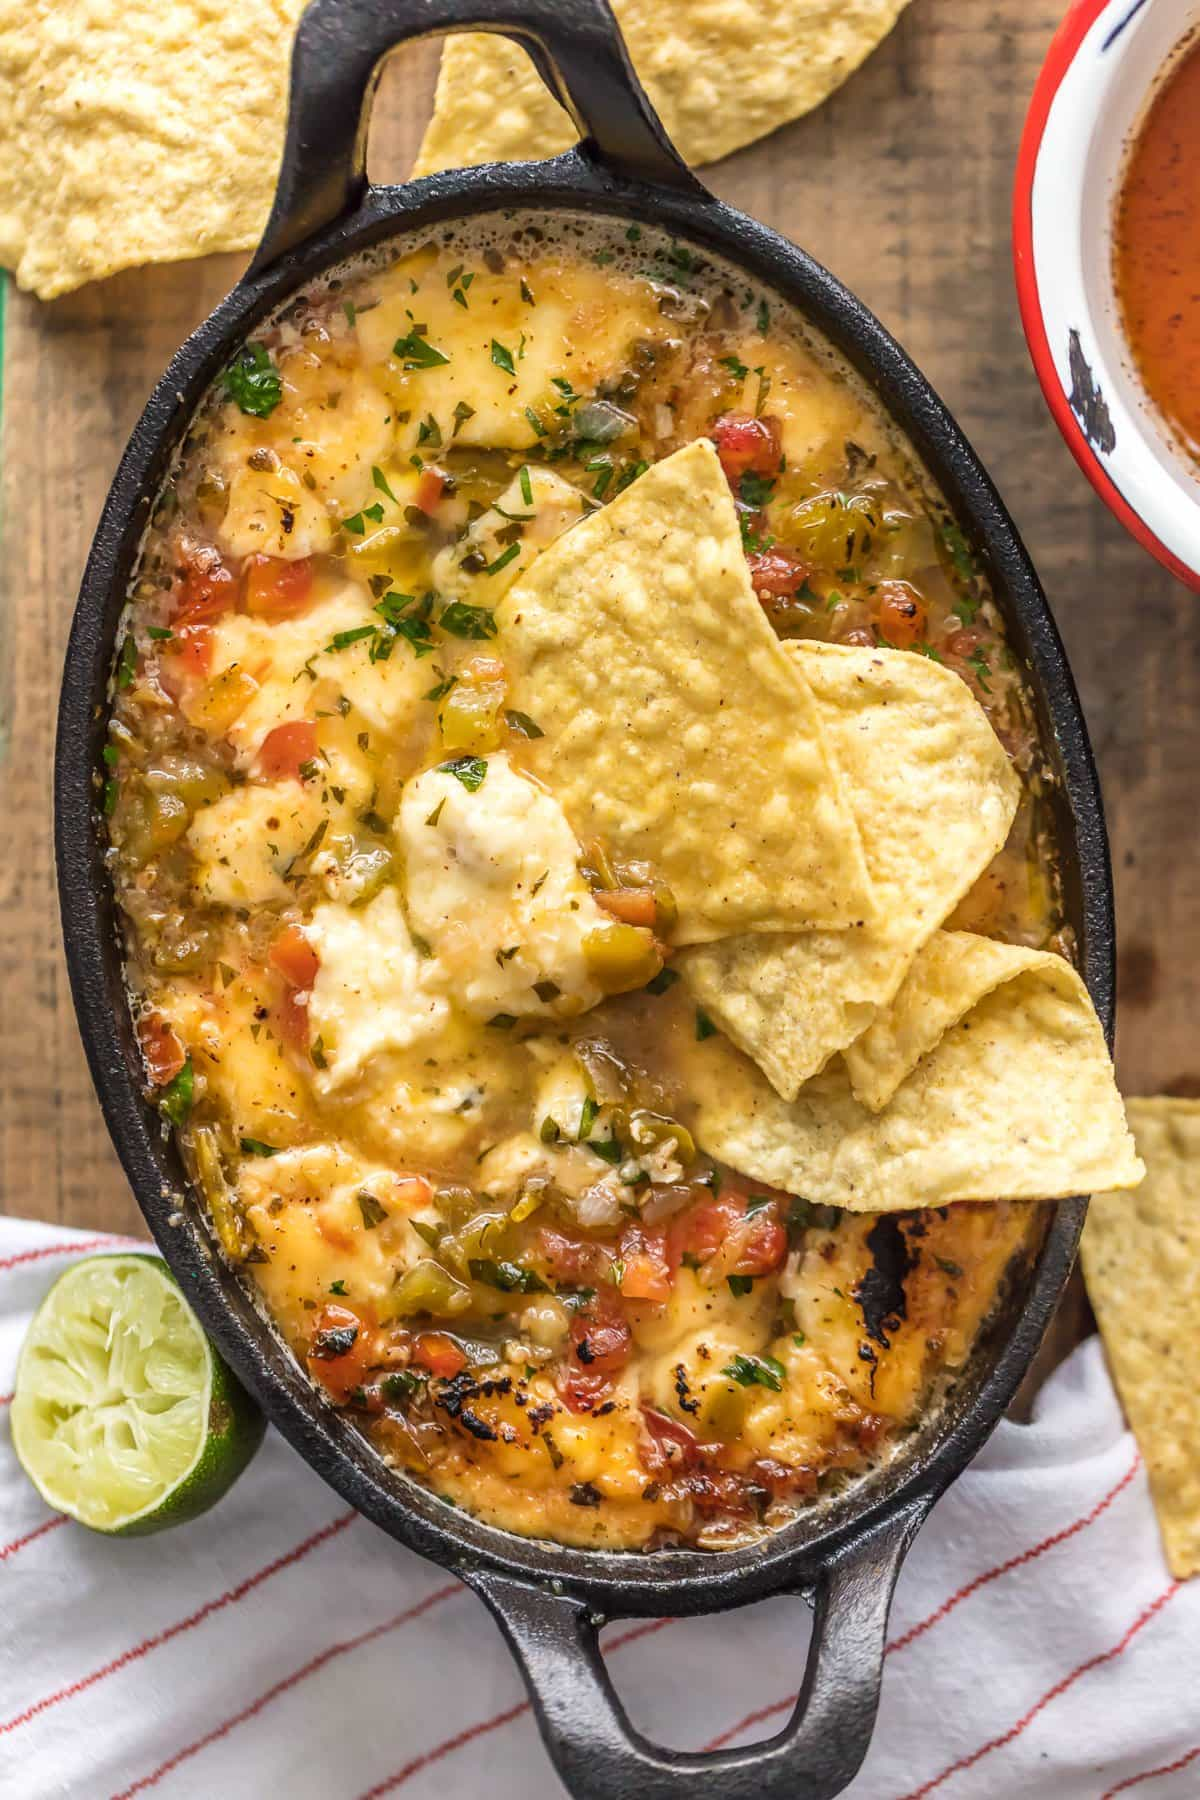 TEQUILA LIME FLAMING QUESO is the most fun way to eat cheese dip! This delicious queso is loaded with pico and green chiles, topped with a chili lime reduction, and then doused in tequila and lit on fire! The ultimate NYE or Super Bowl appetizer!